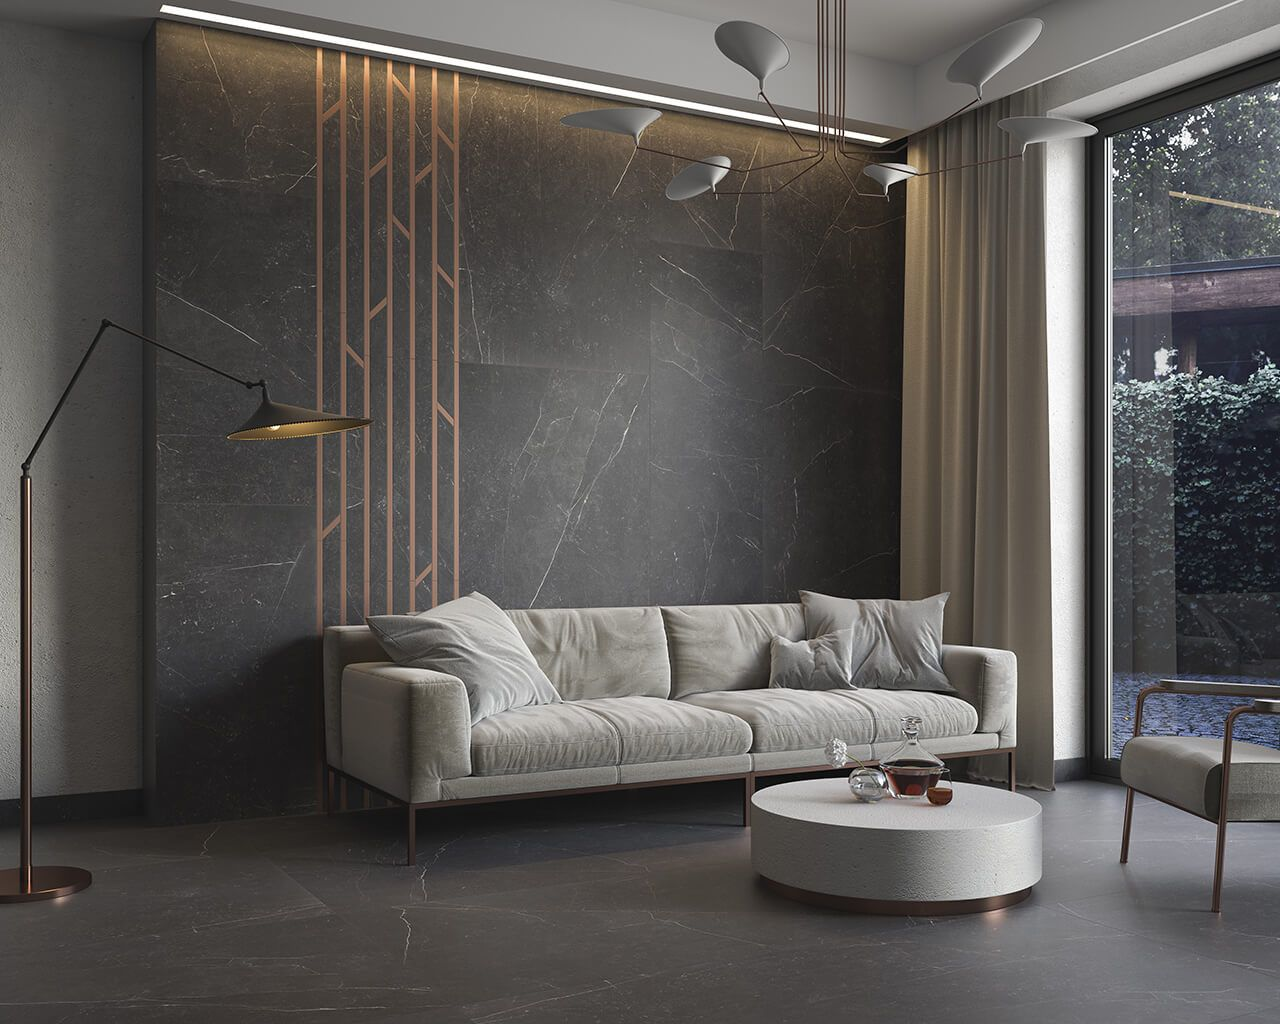 Exclusive Living Room With Black Marble In The Leading Role Ceramika Paradyz